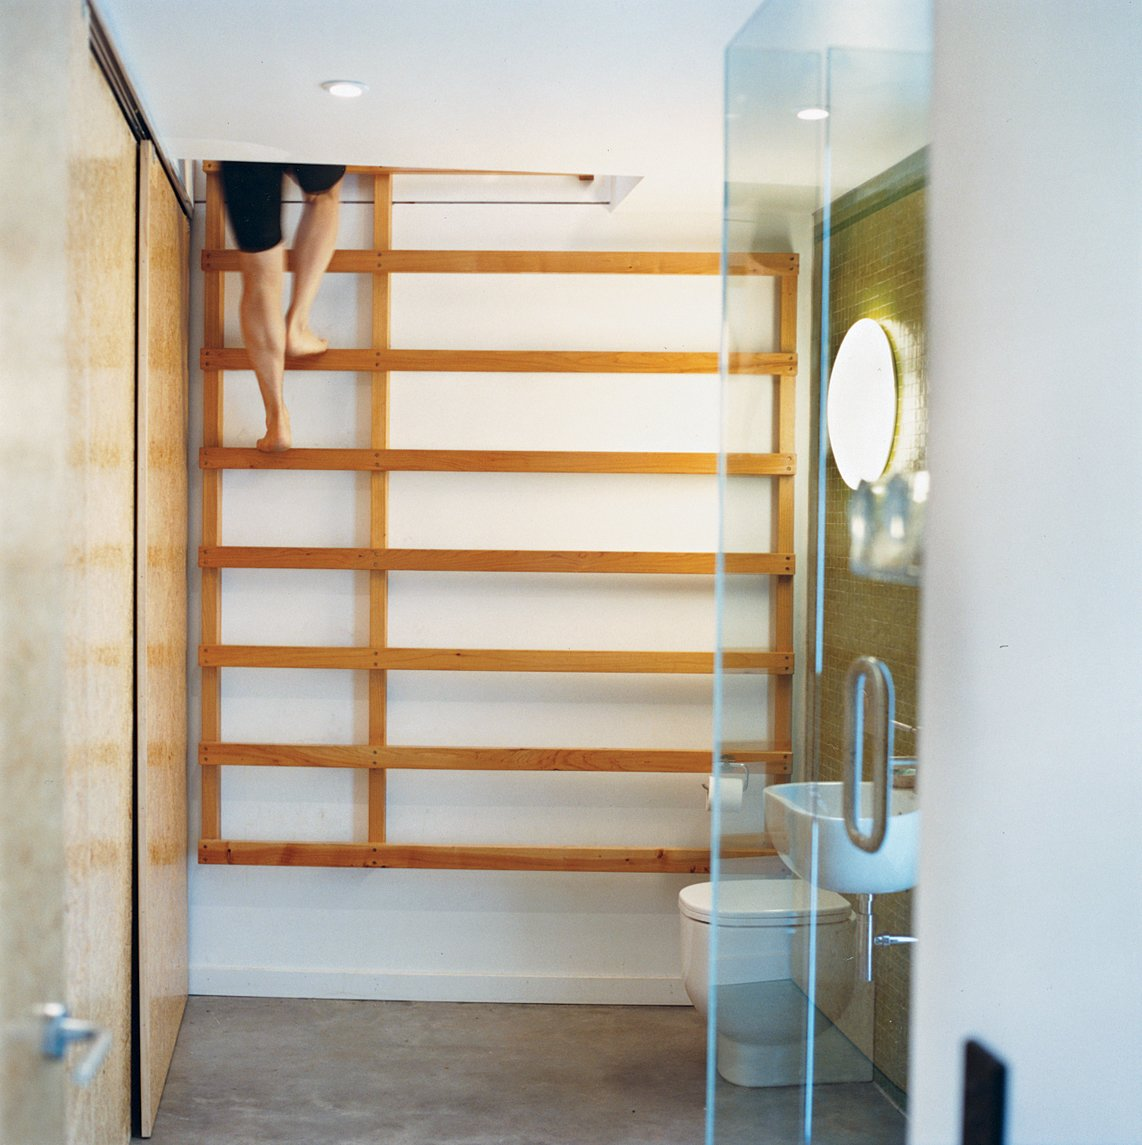 One bathroom features a ladder that leads up to a yoga studio. Nature Nurtured - Photo 4 of 12